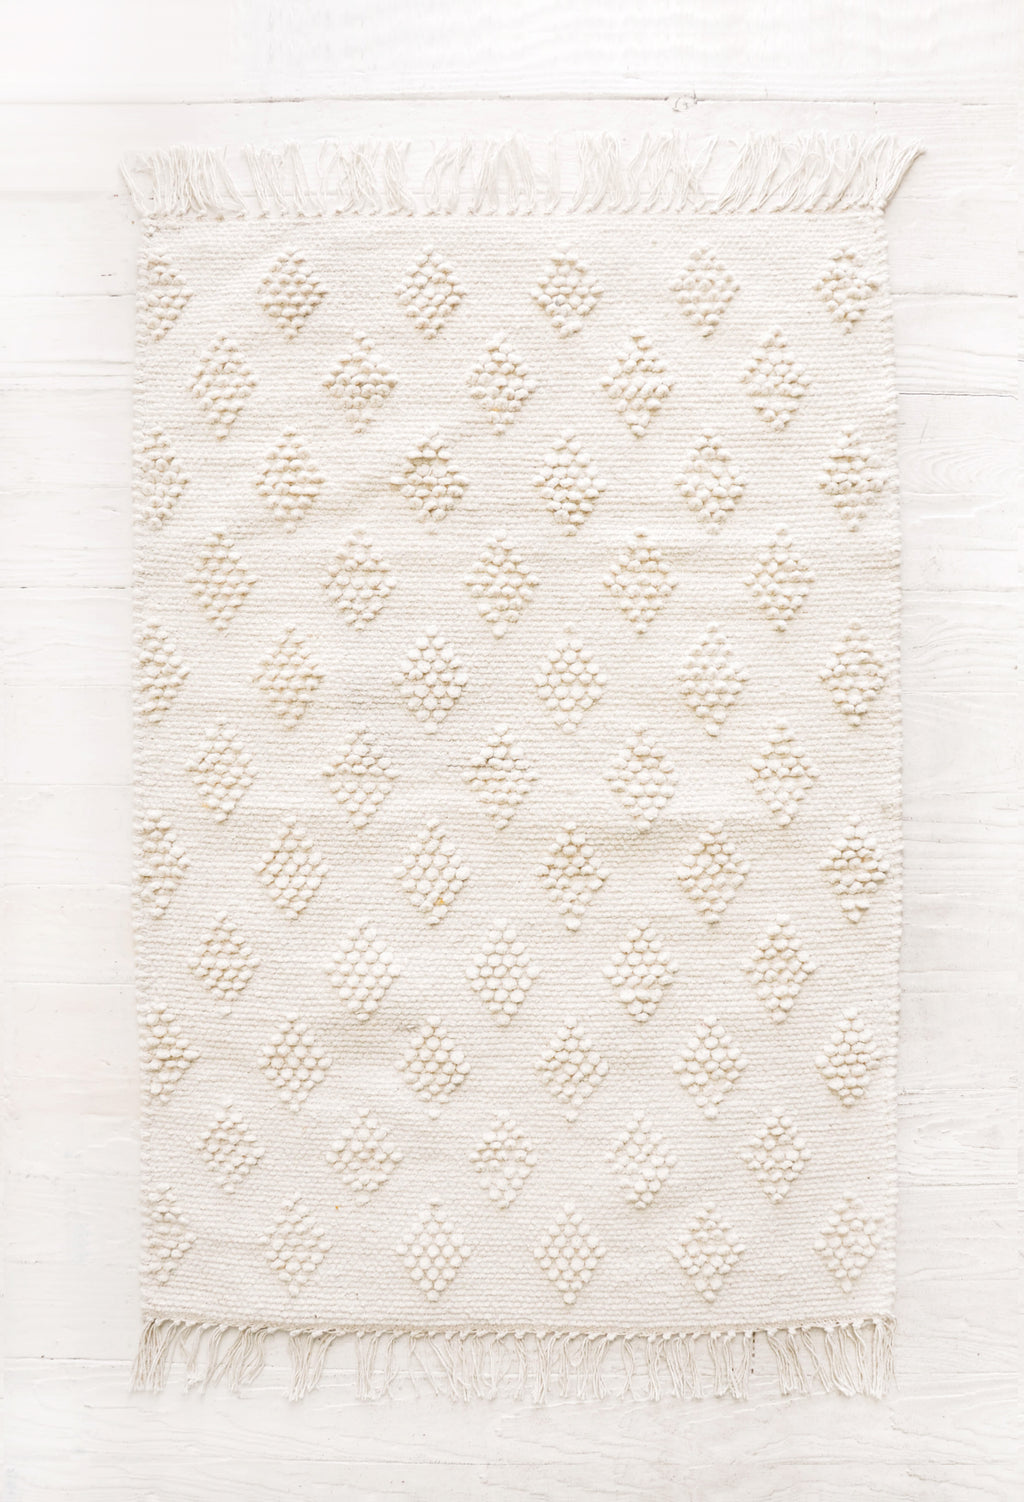 2: Flatweave rug in ivory cotton with raised, tonal textured triangle pattern and fringe trim on two ends.